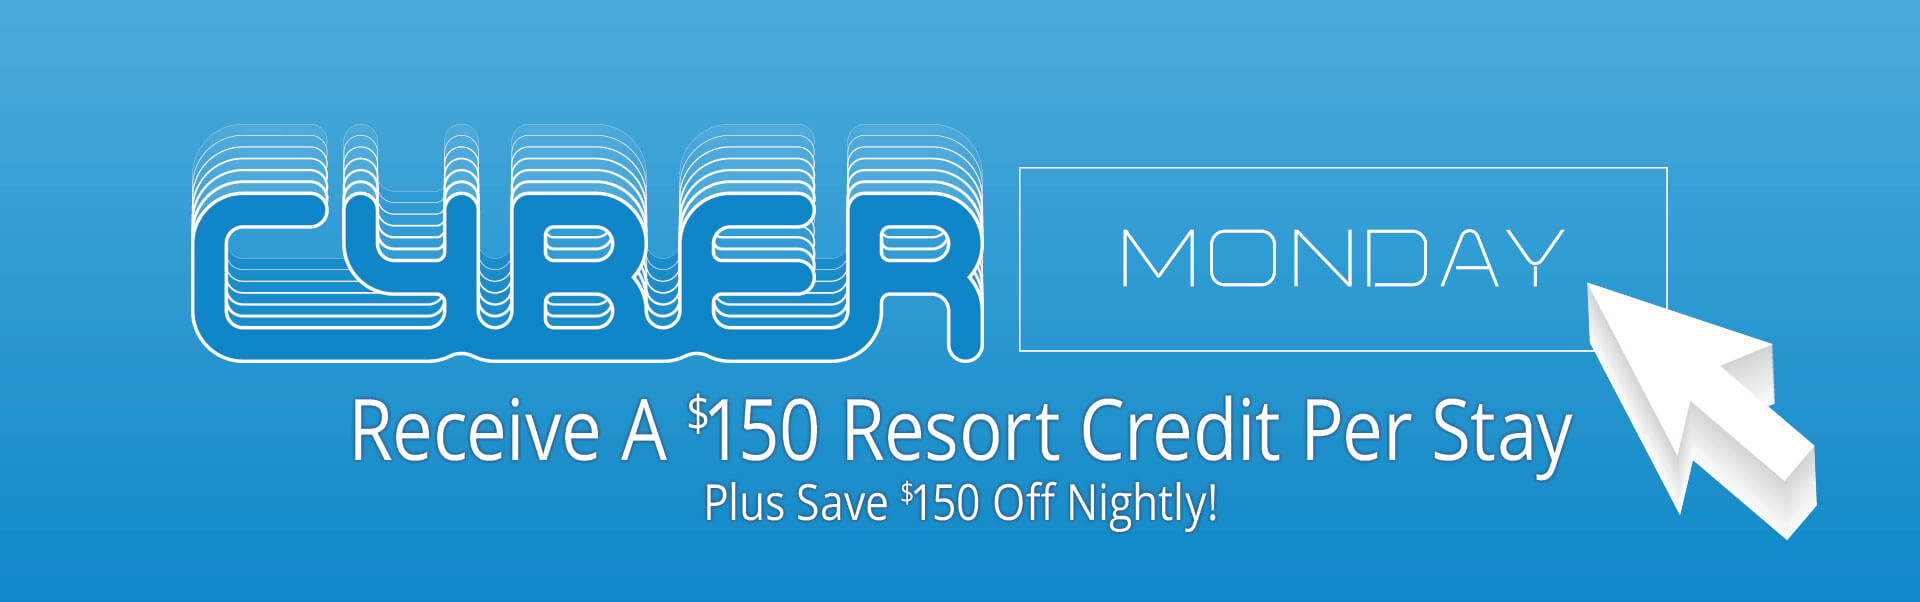 Coupon code for mount olympus awards